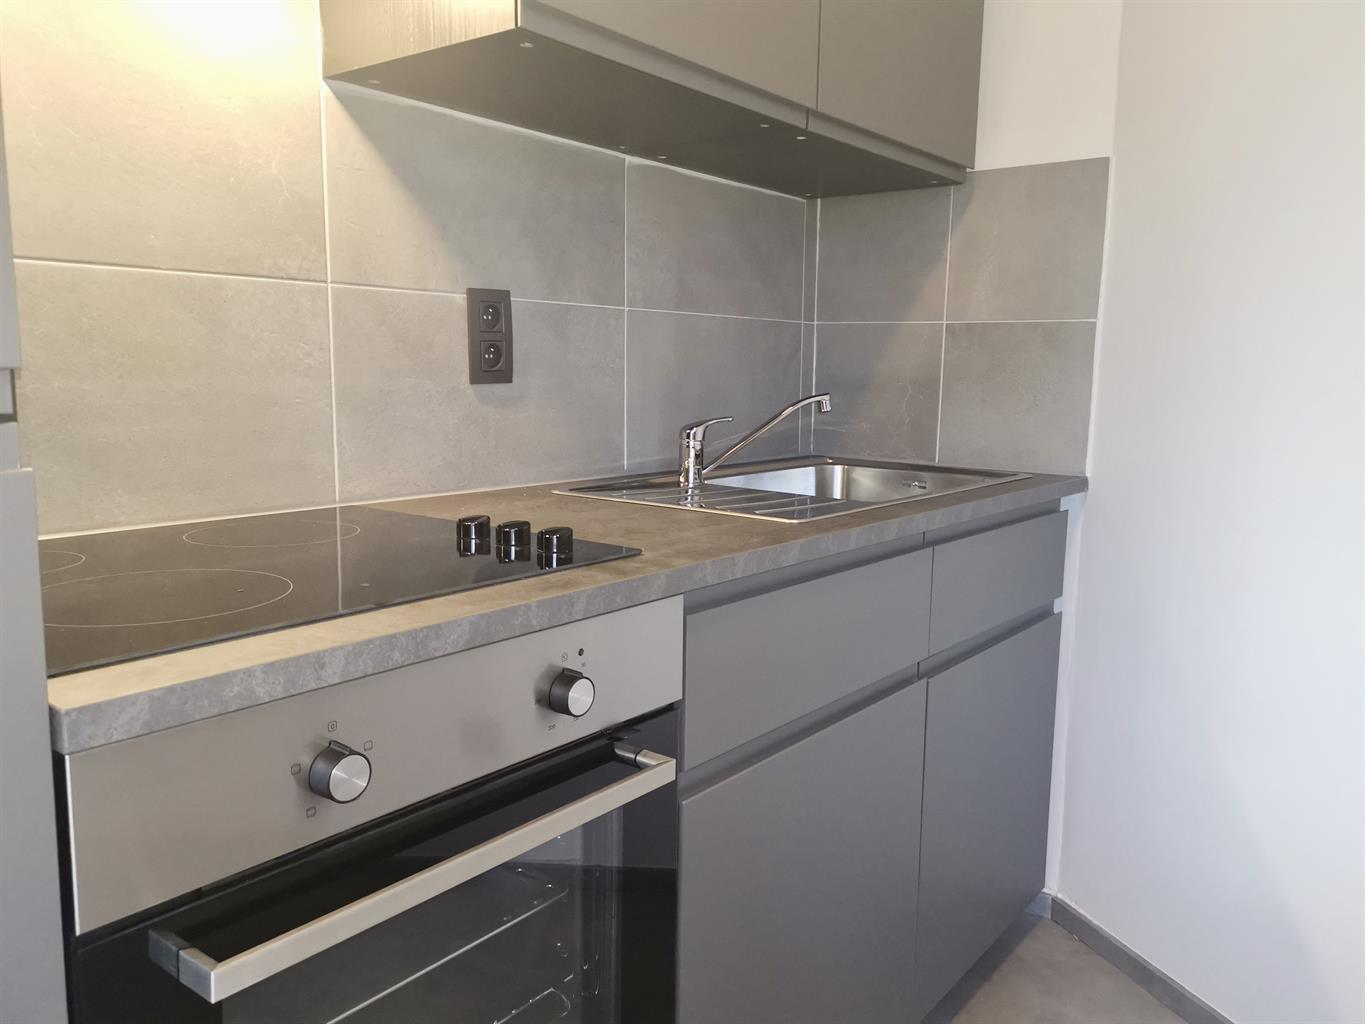 Studio - Molenbeek-Saint-Jean - #4057522-9